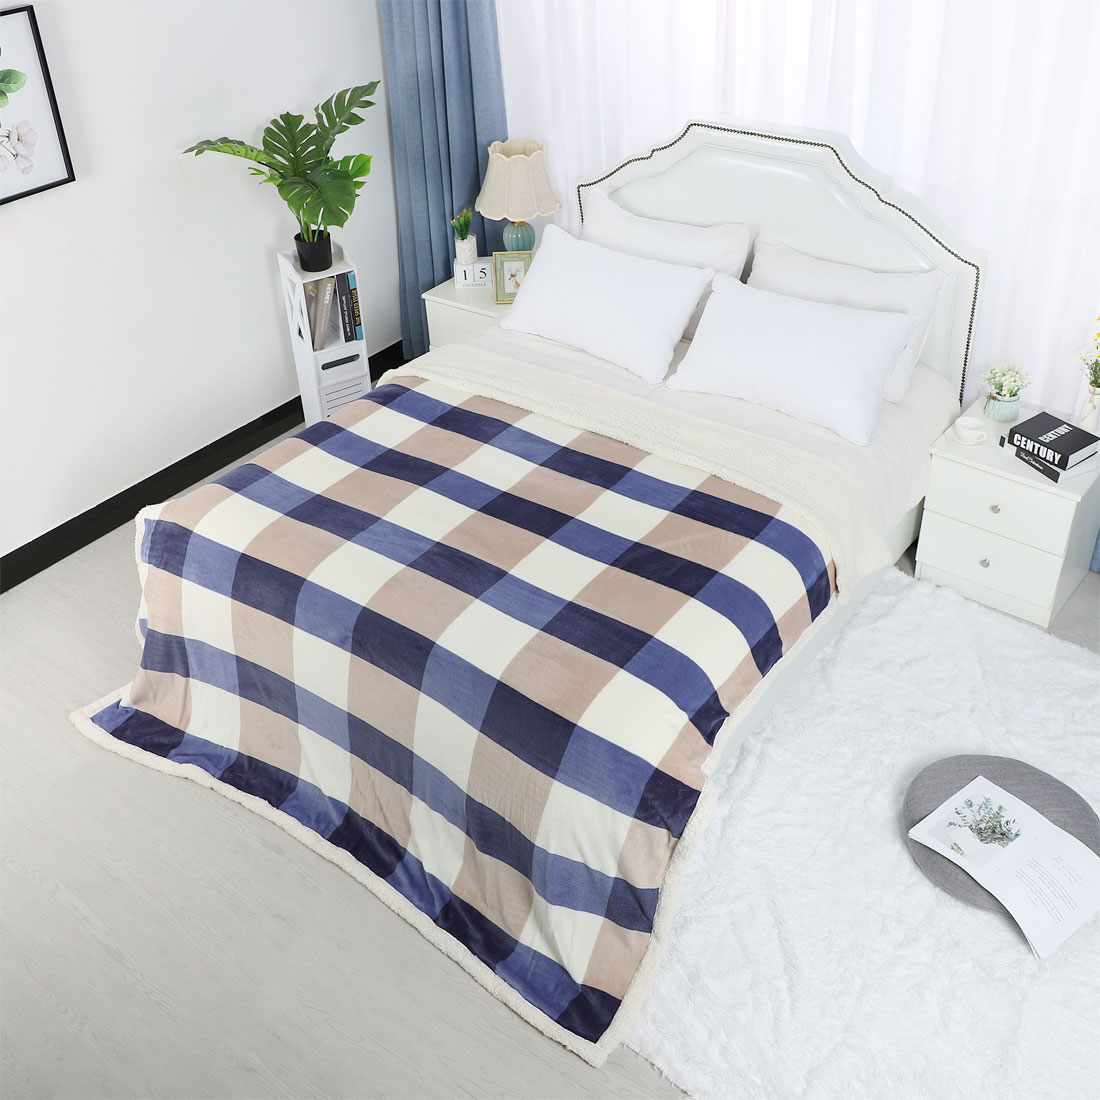 Home-Fleece-Soft-Blanket-Plush-Plaid-Pattern-Bed-Blanket-Twin-Full-Queen-Size thumbnail 14